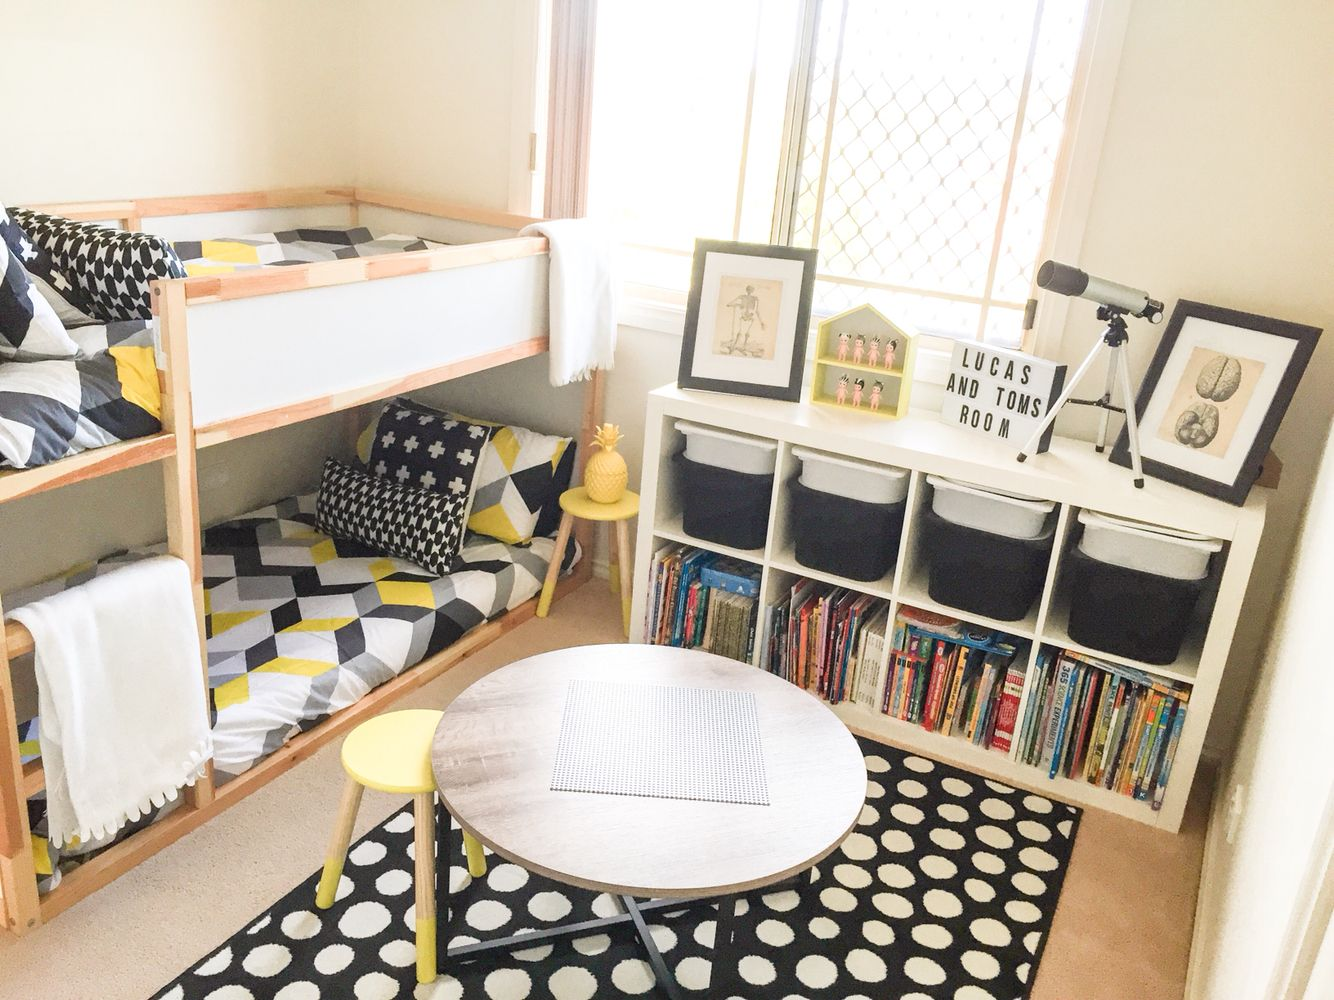 Shared Boys Geometrical Bedroom Combination Of Ikea And Kmart Styling Monochrome Yellow Theme Ikea S Shared Kids Room Toddler Bedrooms Kids Shared Bedroom